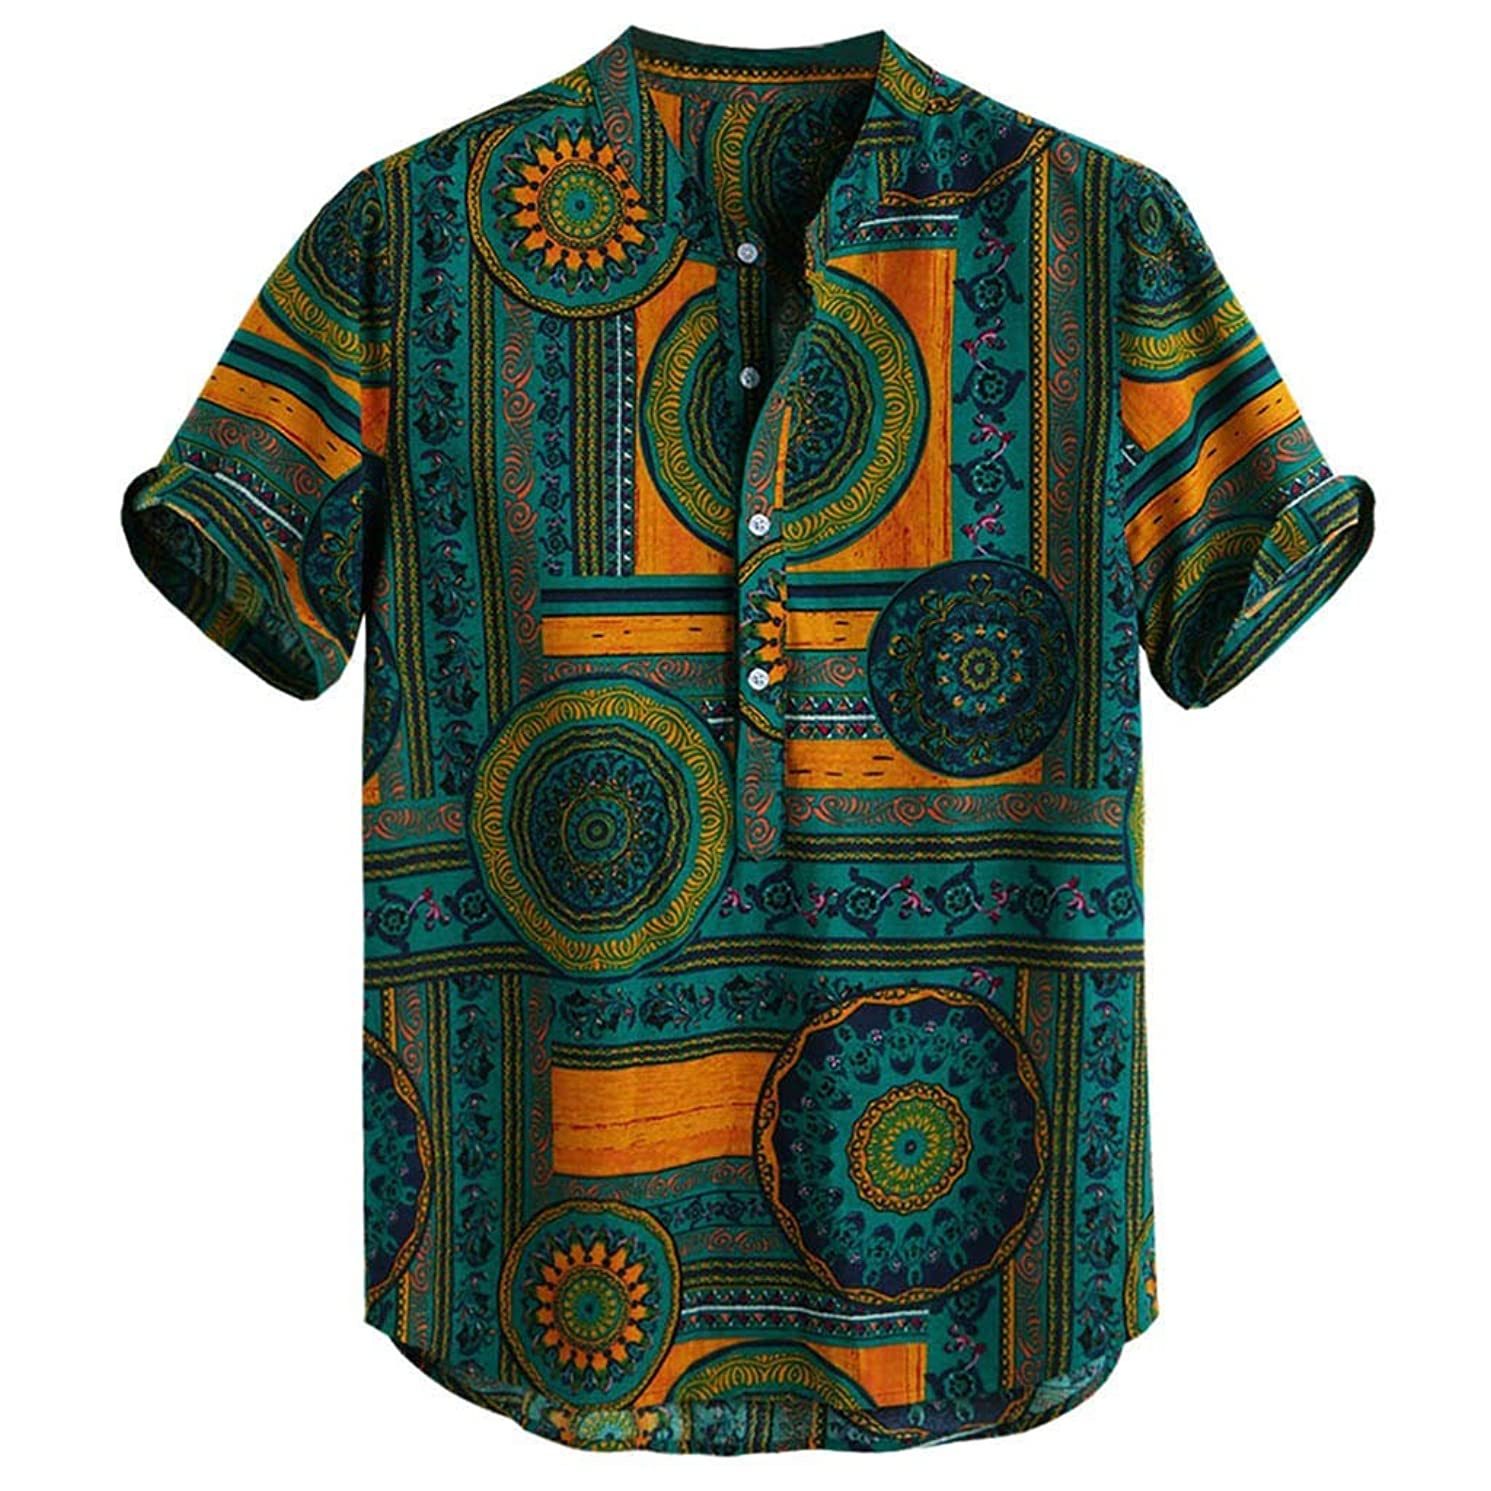 Swyss Men's Casual Short Sleeve Henley T-Shirts Ethnic Style Printed Baggy Summer Beach Shirts Tops